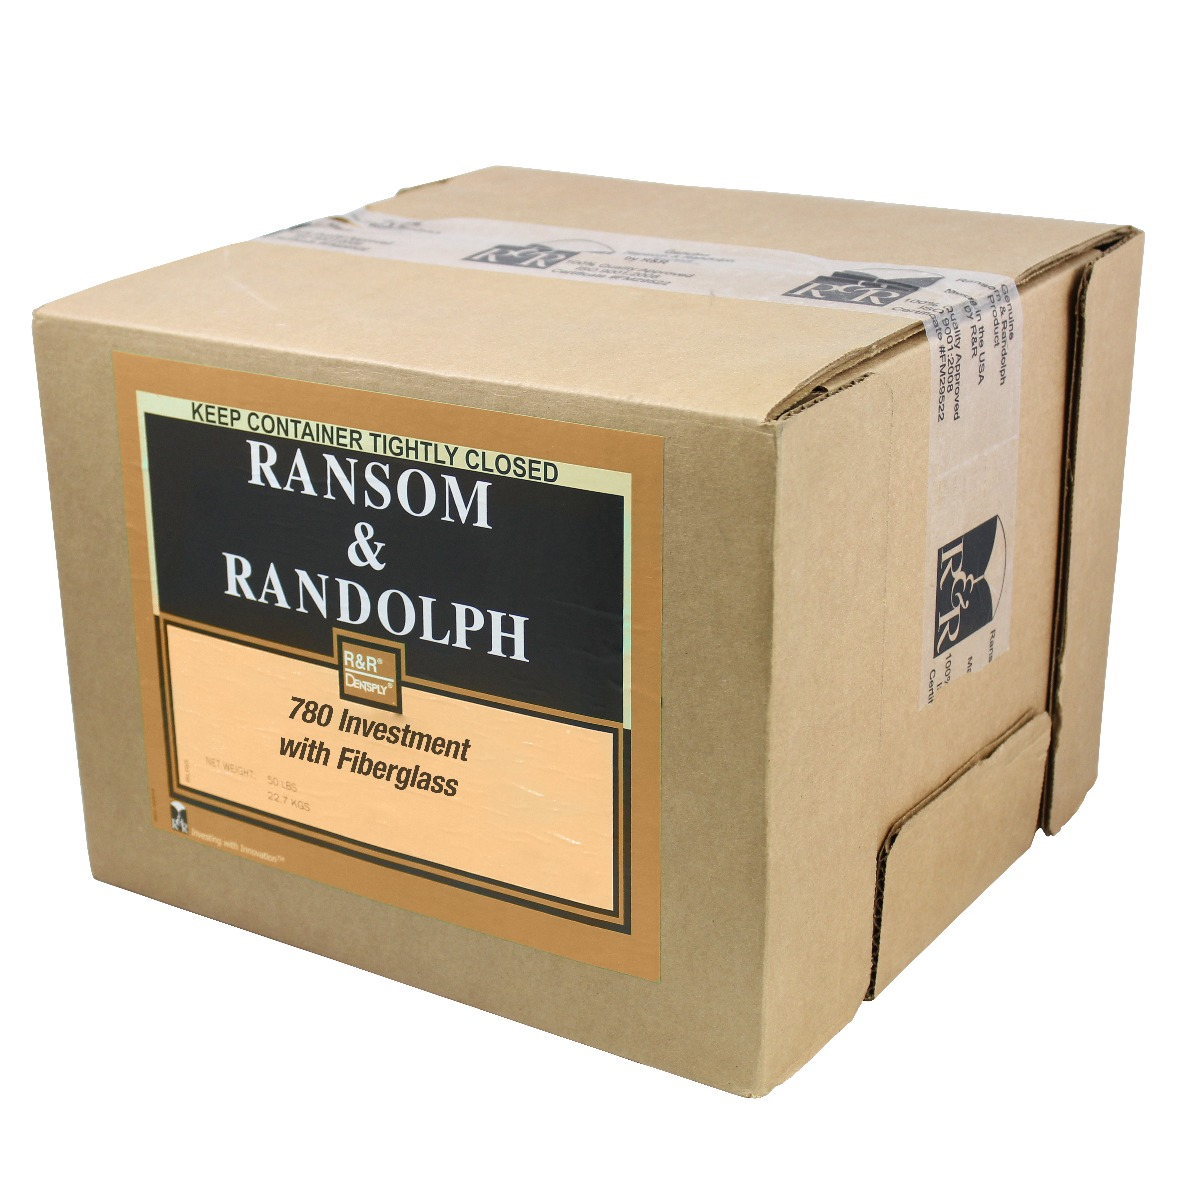 Ransom & Randolph #780 Stainless Steel Powder